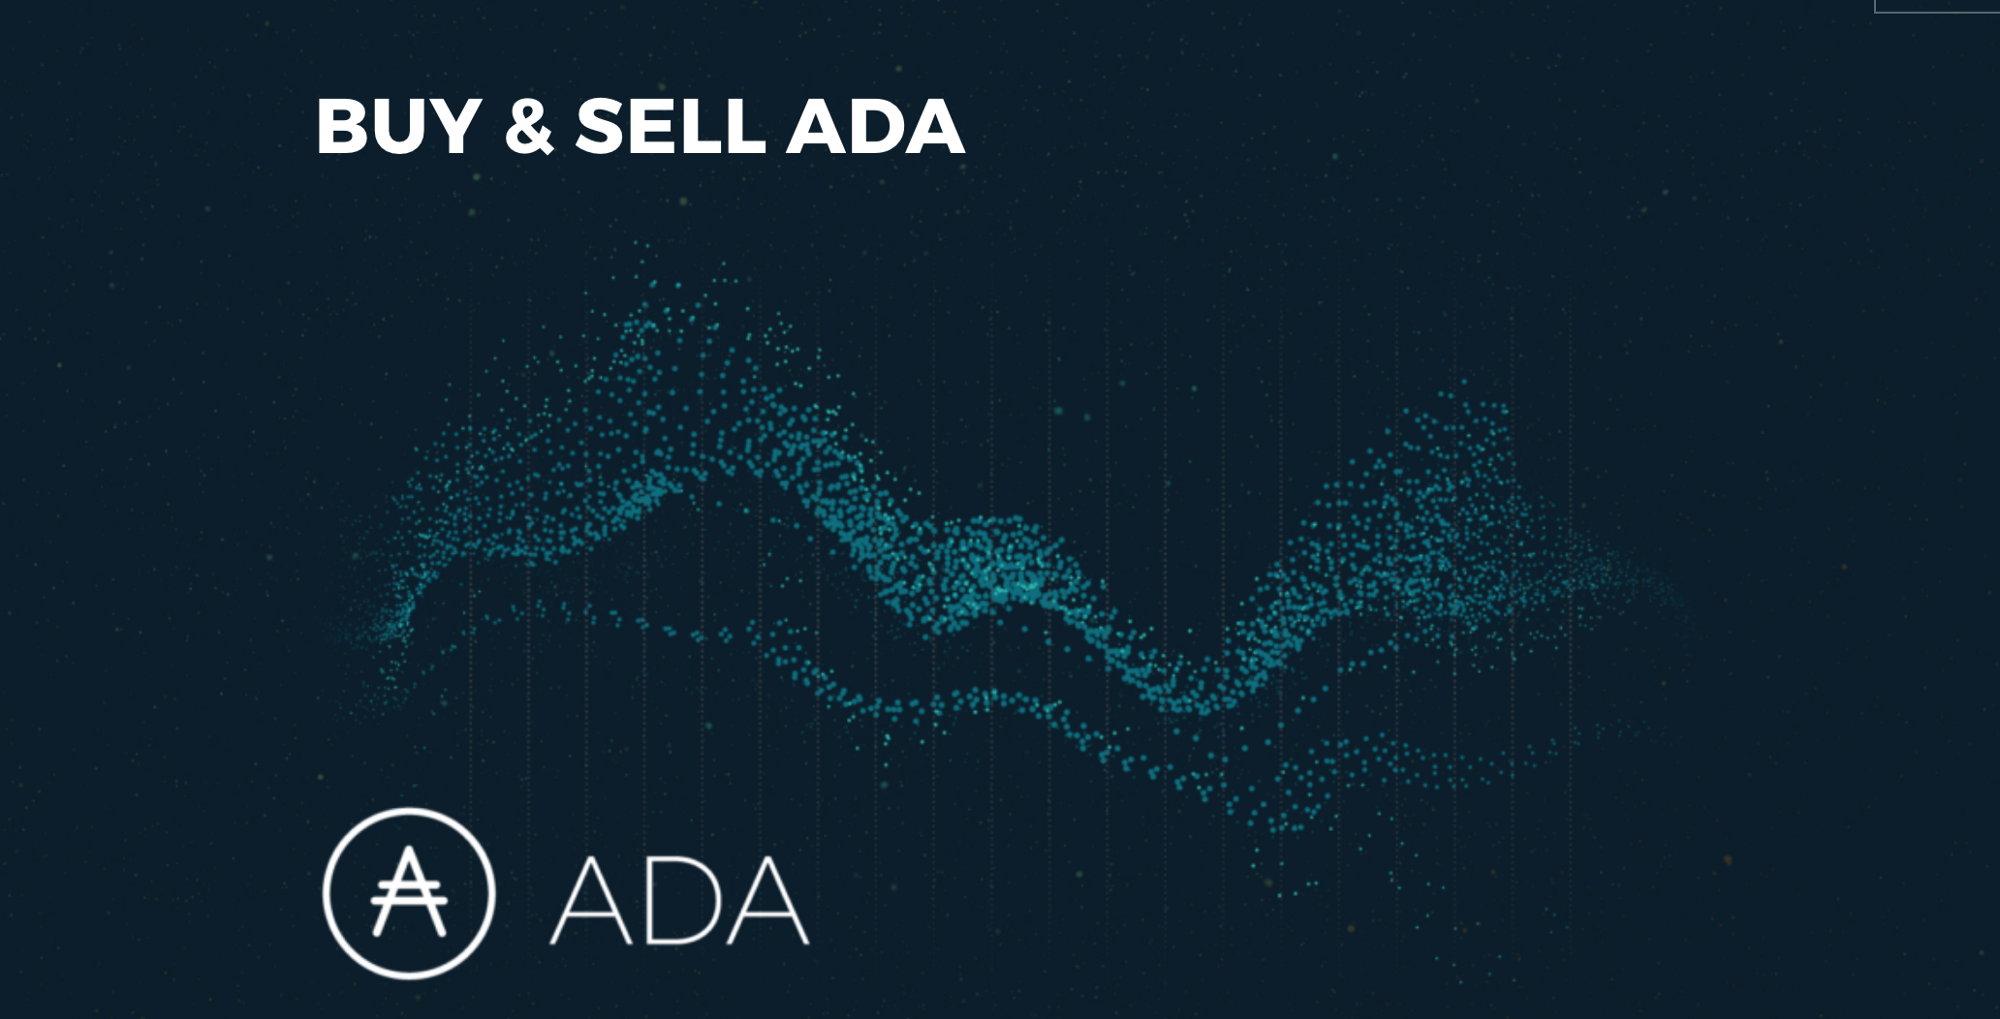 Cardano (ADA): How to Buy and Sell the Cryptocurrency